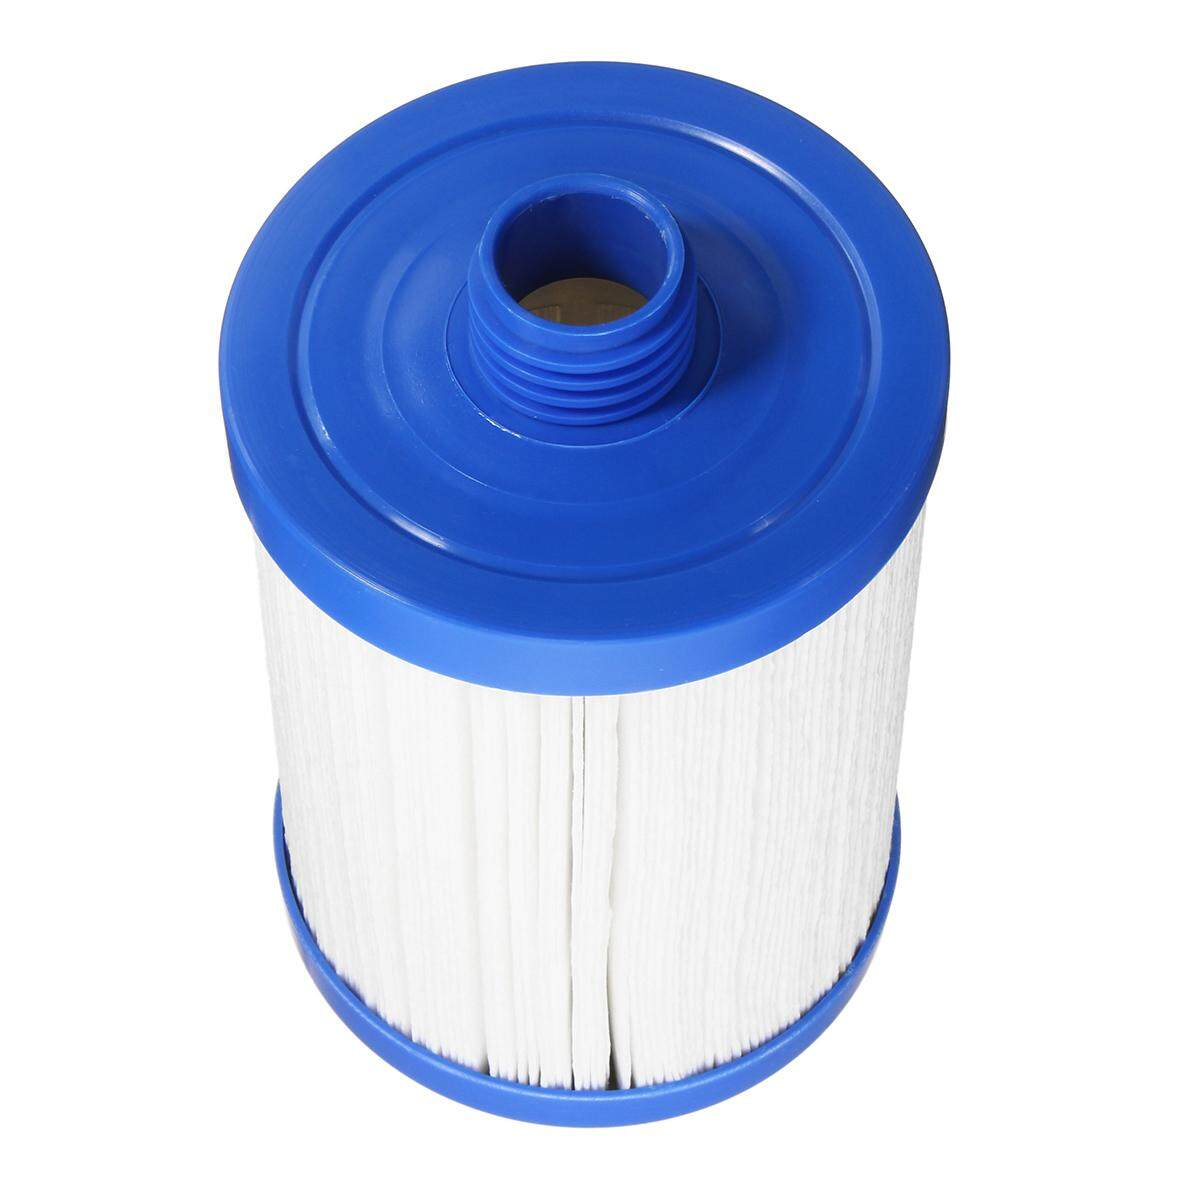 Spa Pool Filter Cartridge Sapphire Heritage Signature Cyclone Monarch La Spas By Moonbeam.